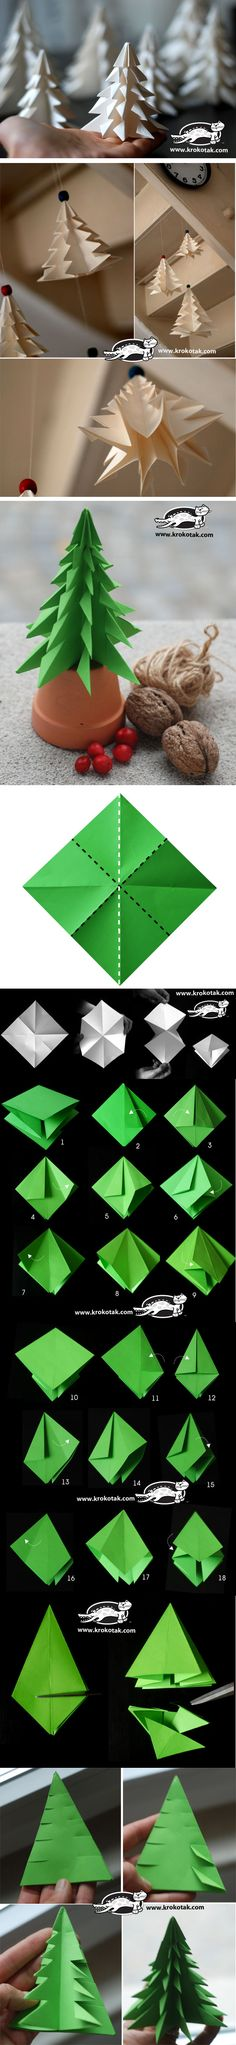 64 trendy Ideas for origami christmas decorations deco Christmas Mason Jars, Noel Christmas, Christmas Crafts, Christmas Decorations, Origami Frog, Diy Origami, Origami Christmas Tree, Diy And Crafts, Paper Crafts